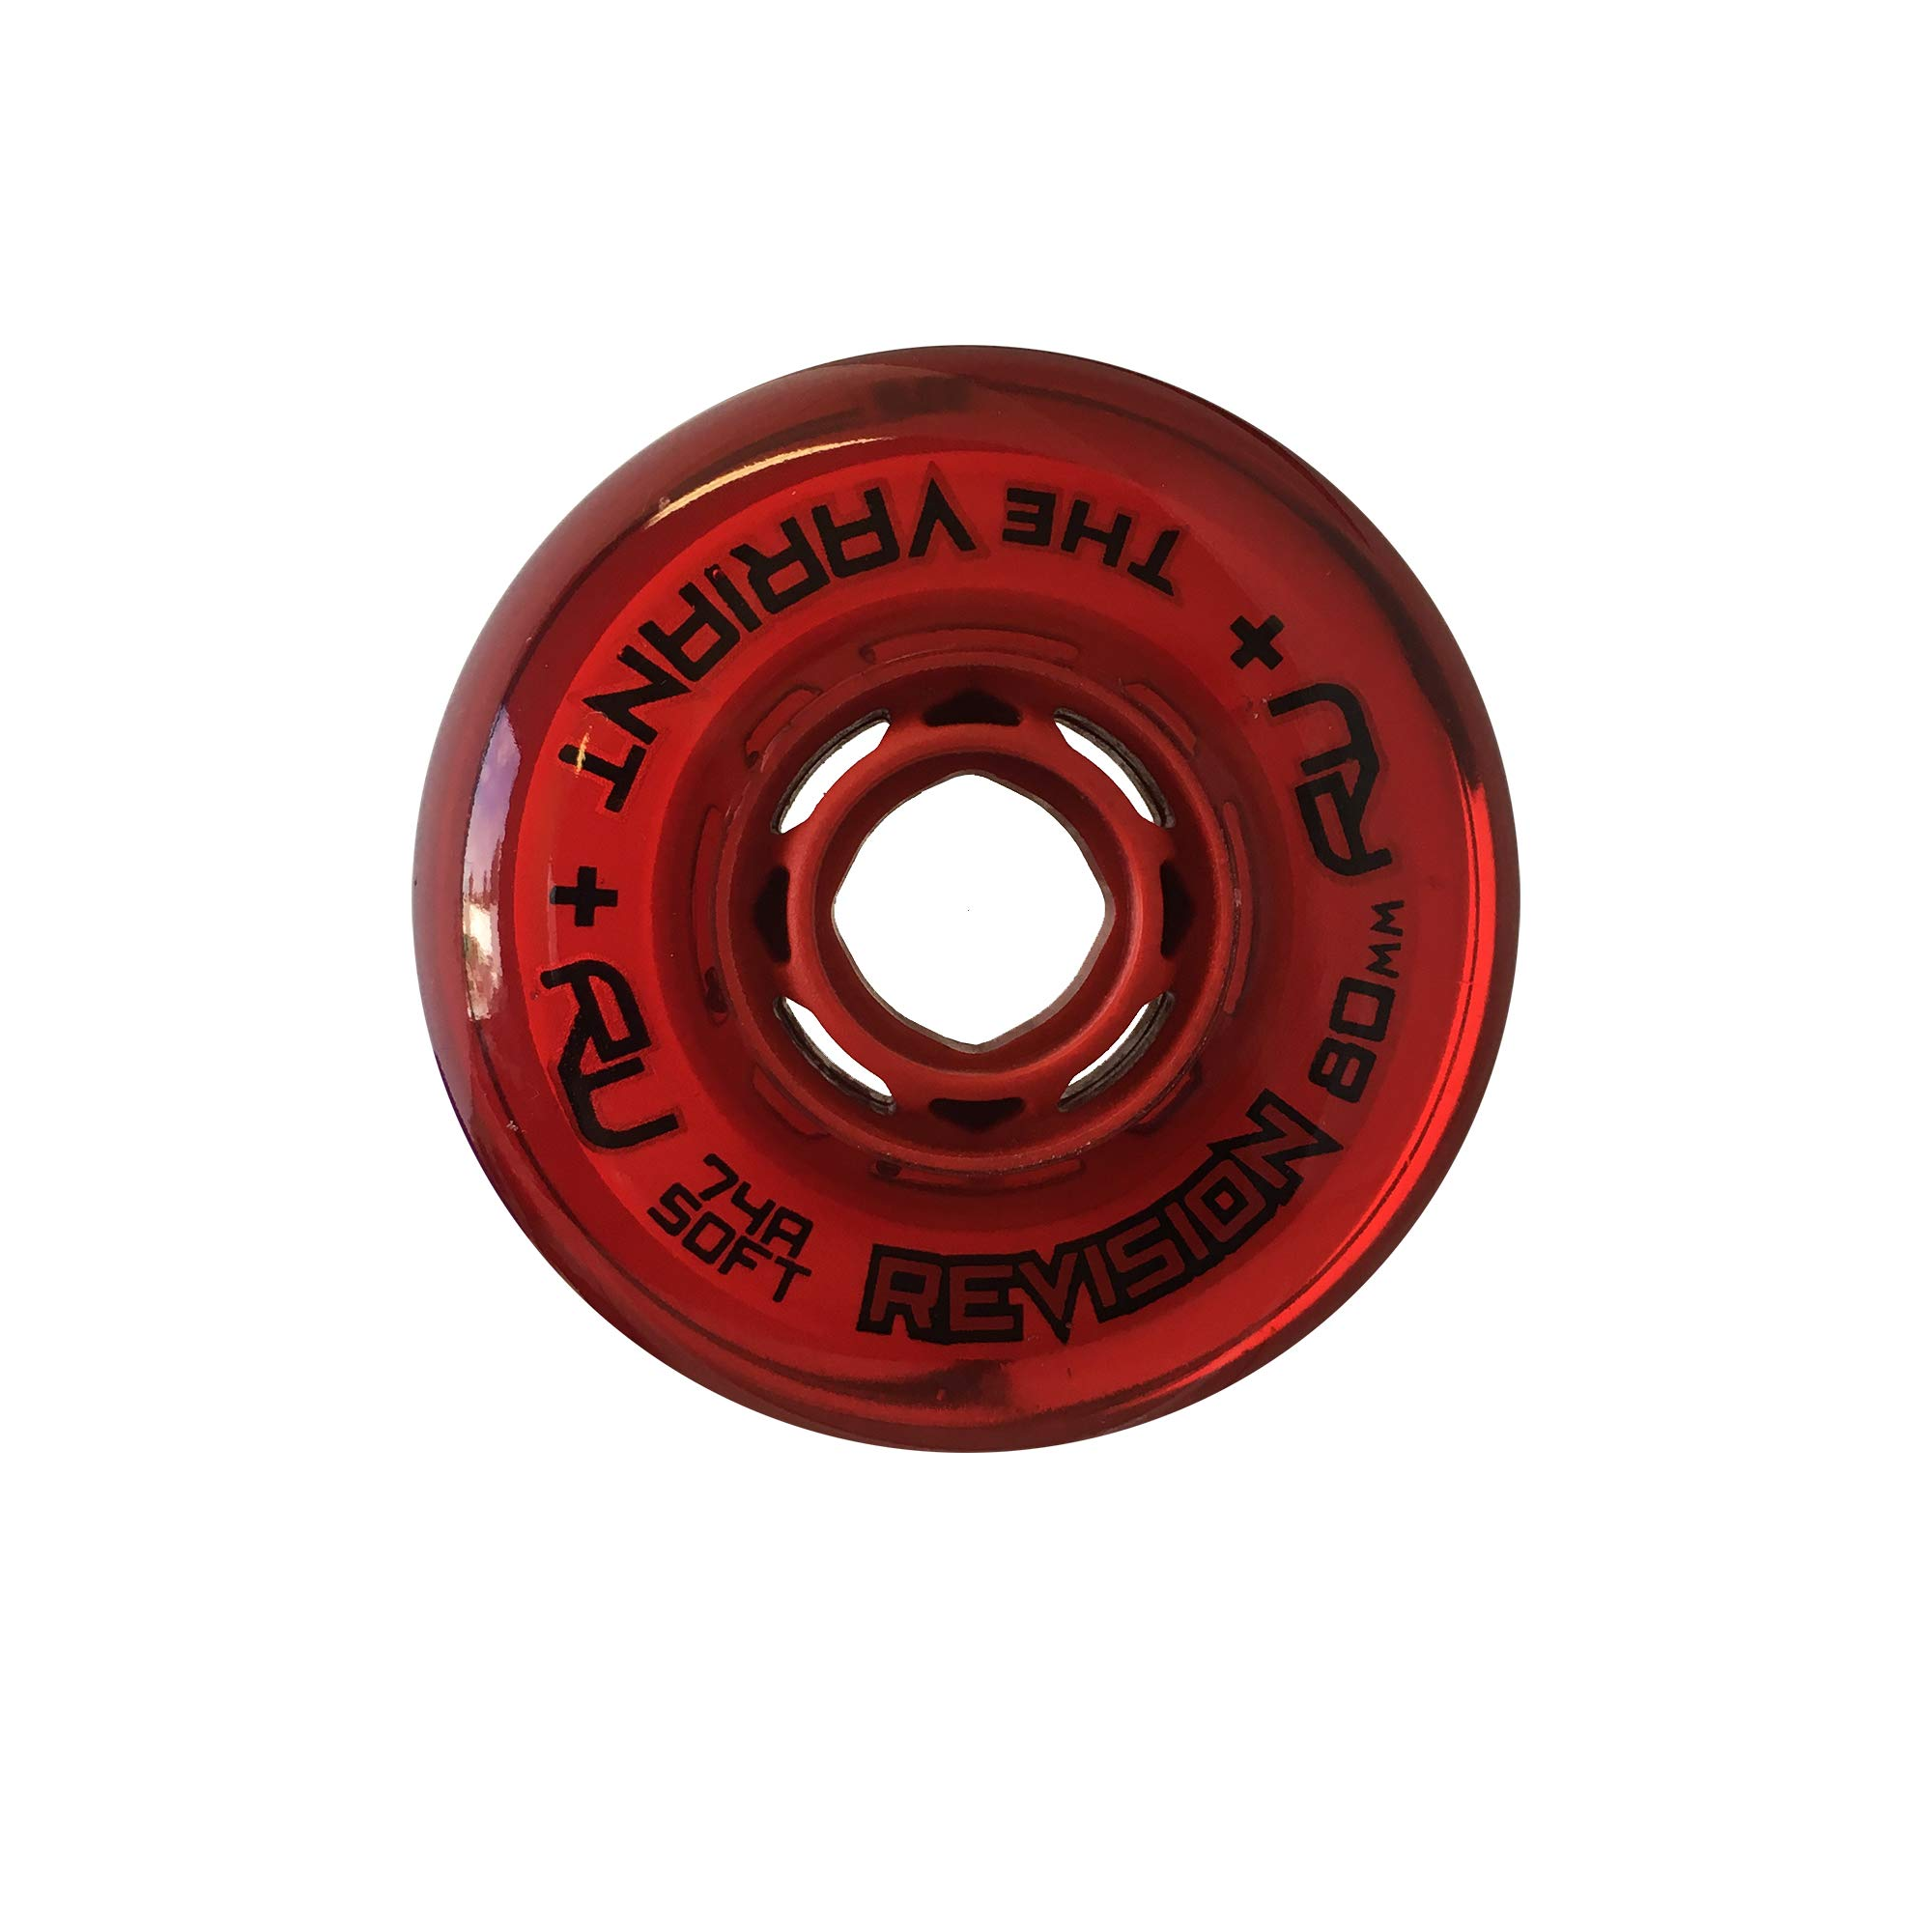 Revision Variant Indoor Inline Roller Hockey Wheel - 74A - 80mm Soft - Red by Revision Hockey